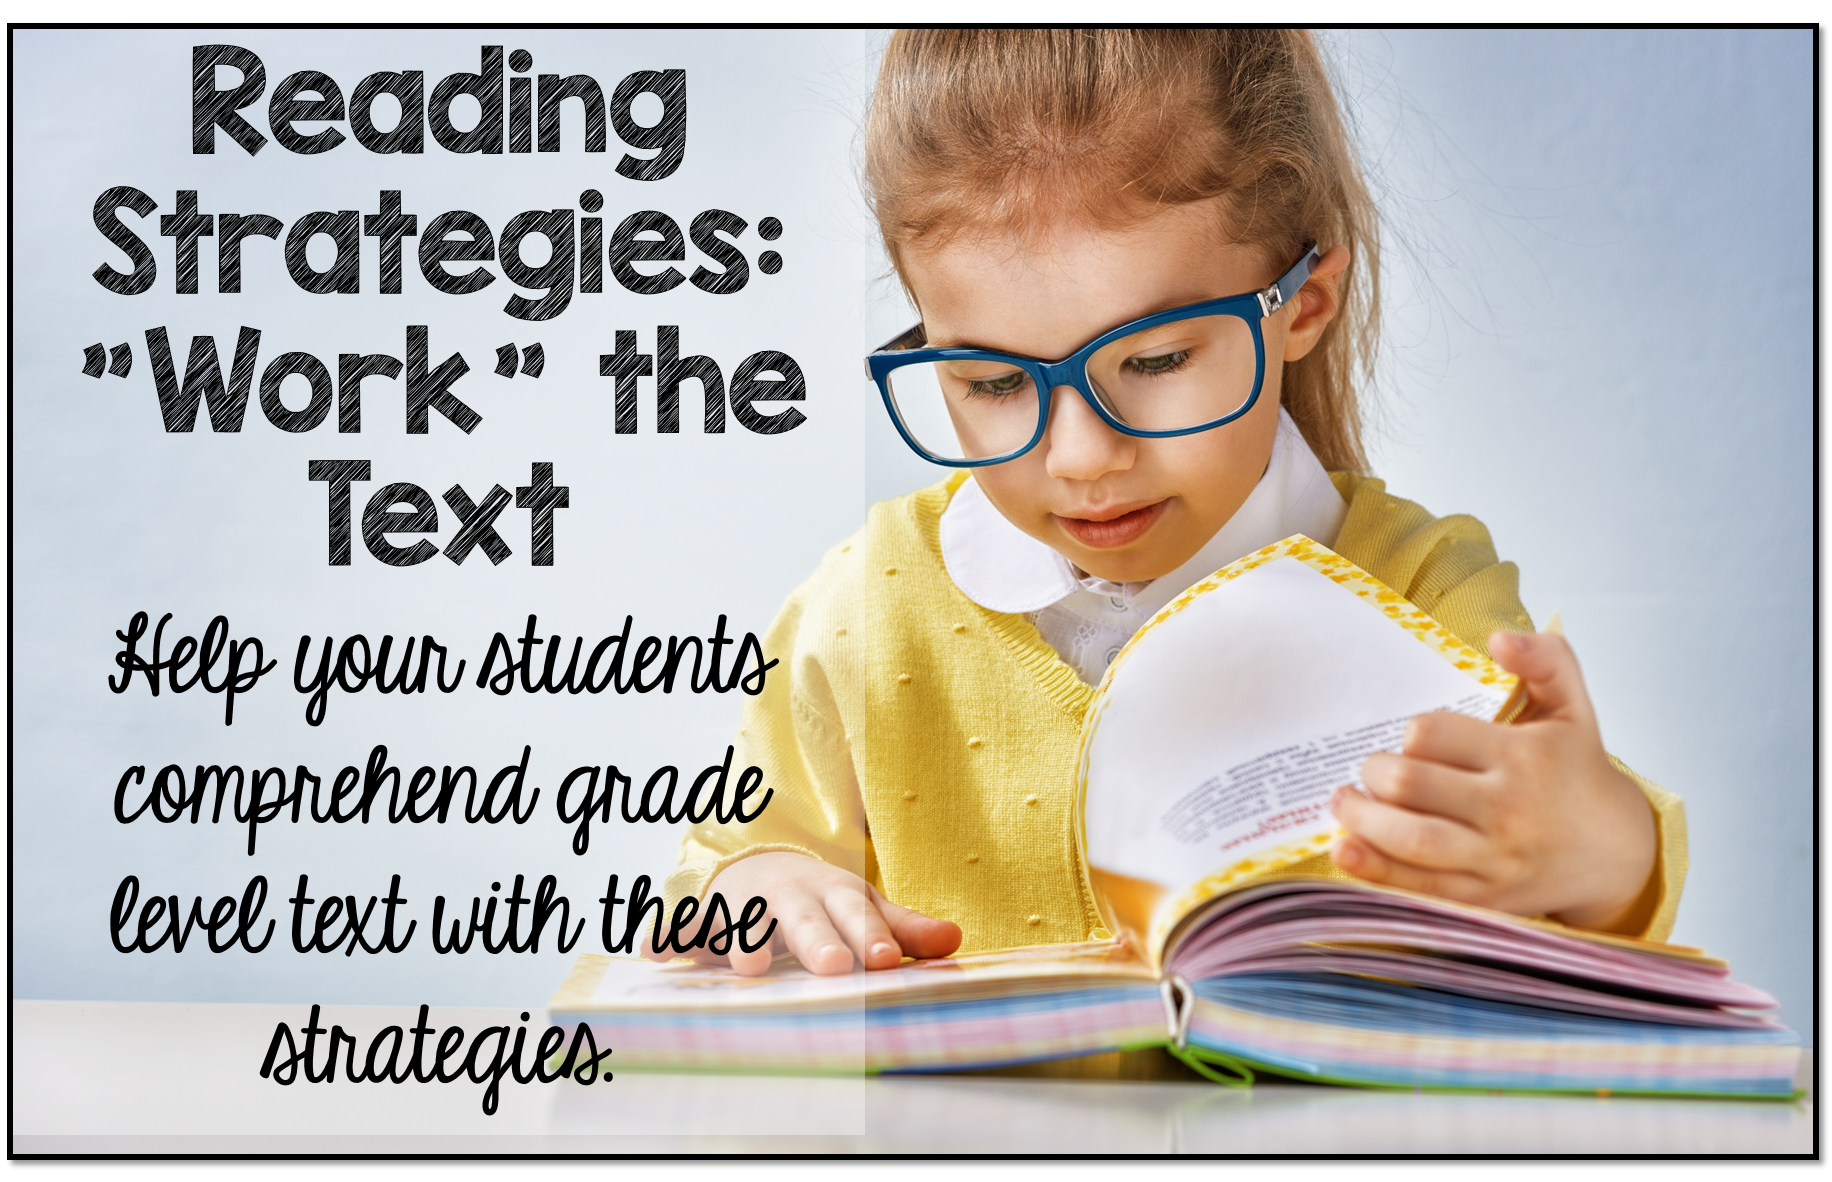 teaching reading strategies Reading comprehension strategies for english language learners lydia breiseth comprehension is the goal of reading, but it can be the most difficult skill to master, especially for english language learners (ells).